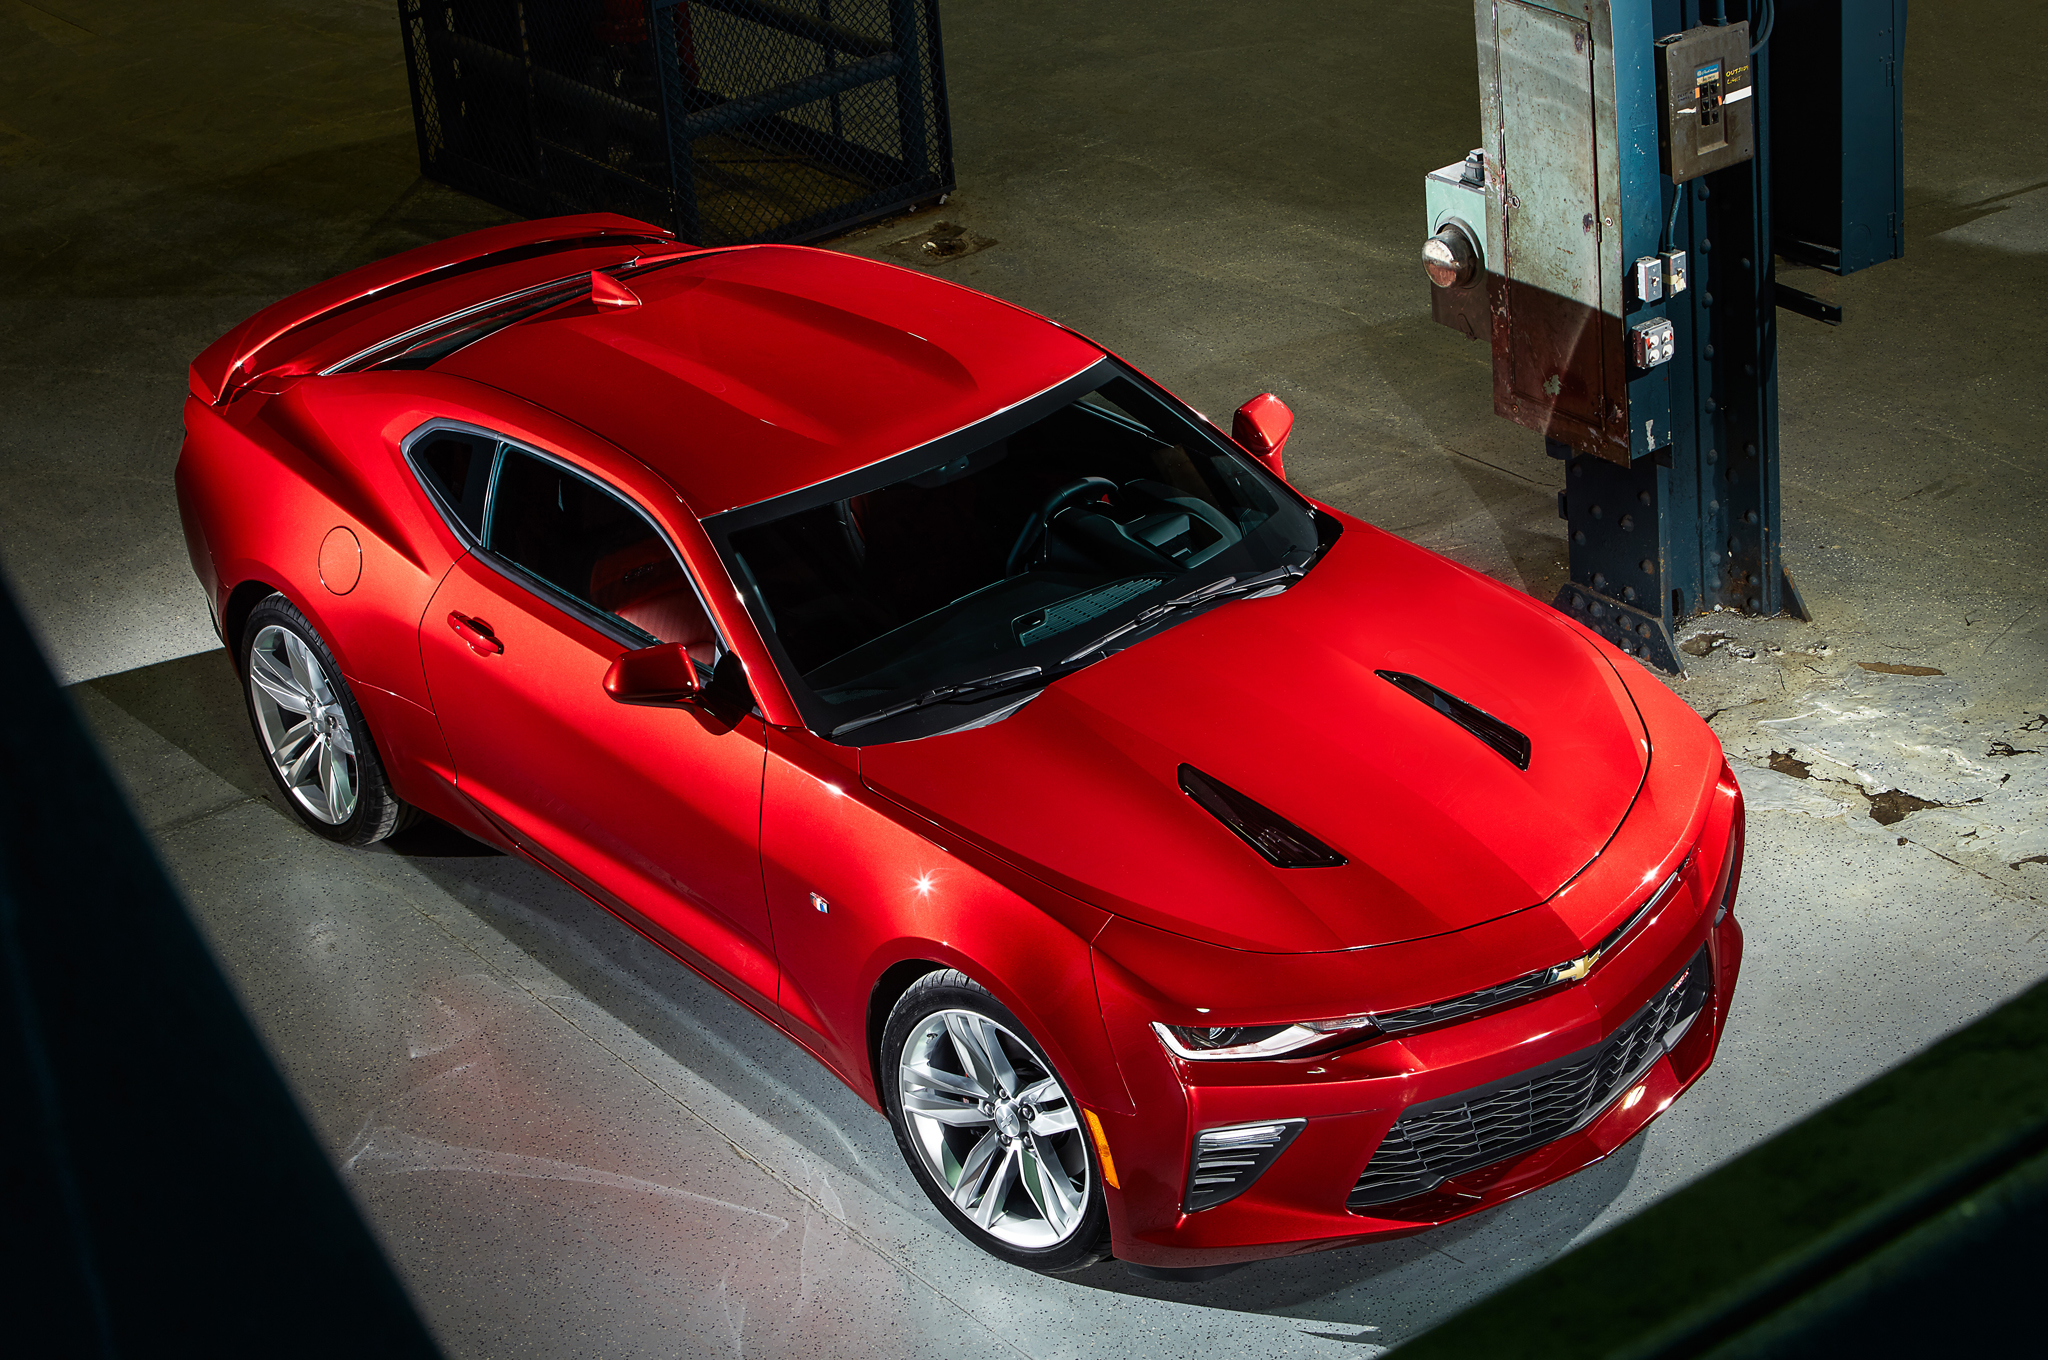 2016 Chevrolet Camaro Ss Exterior (Photo 47 of 54)